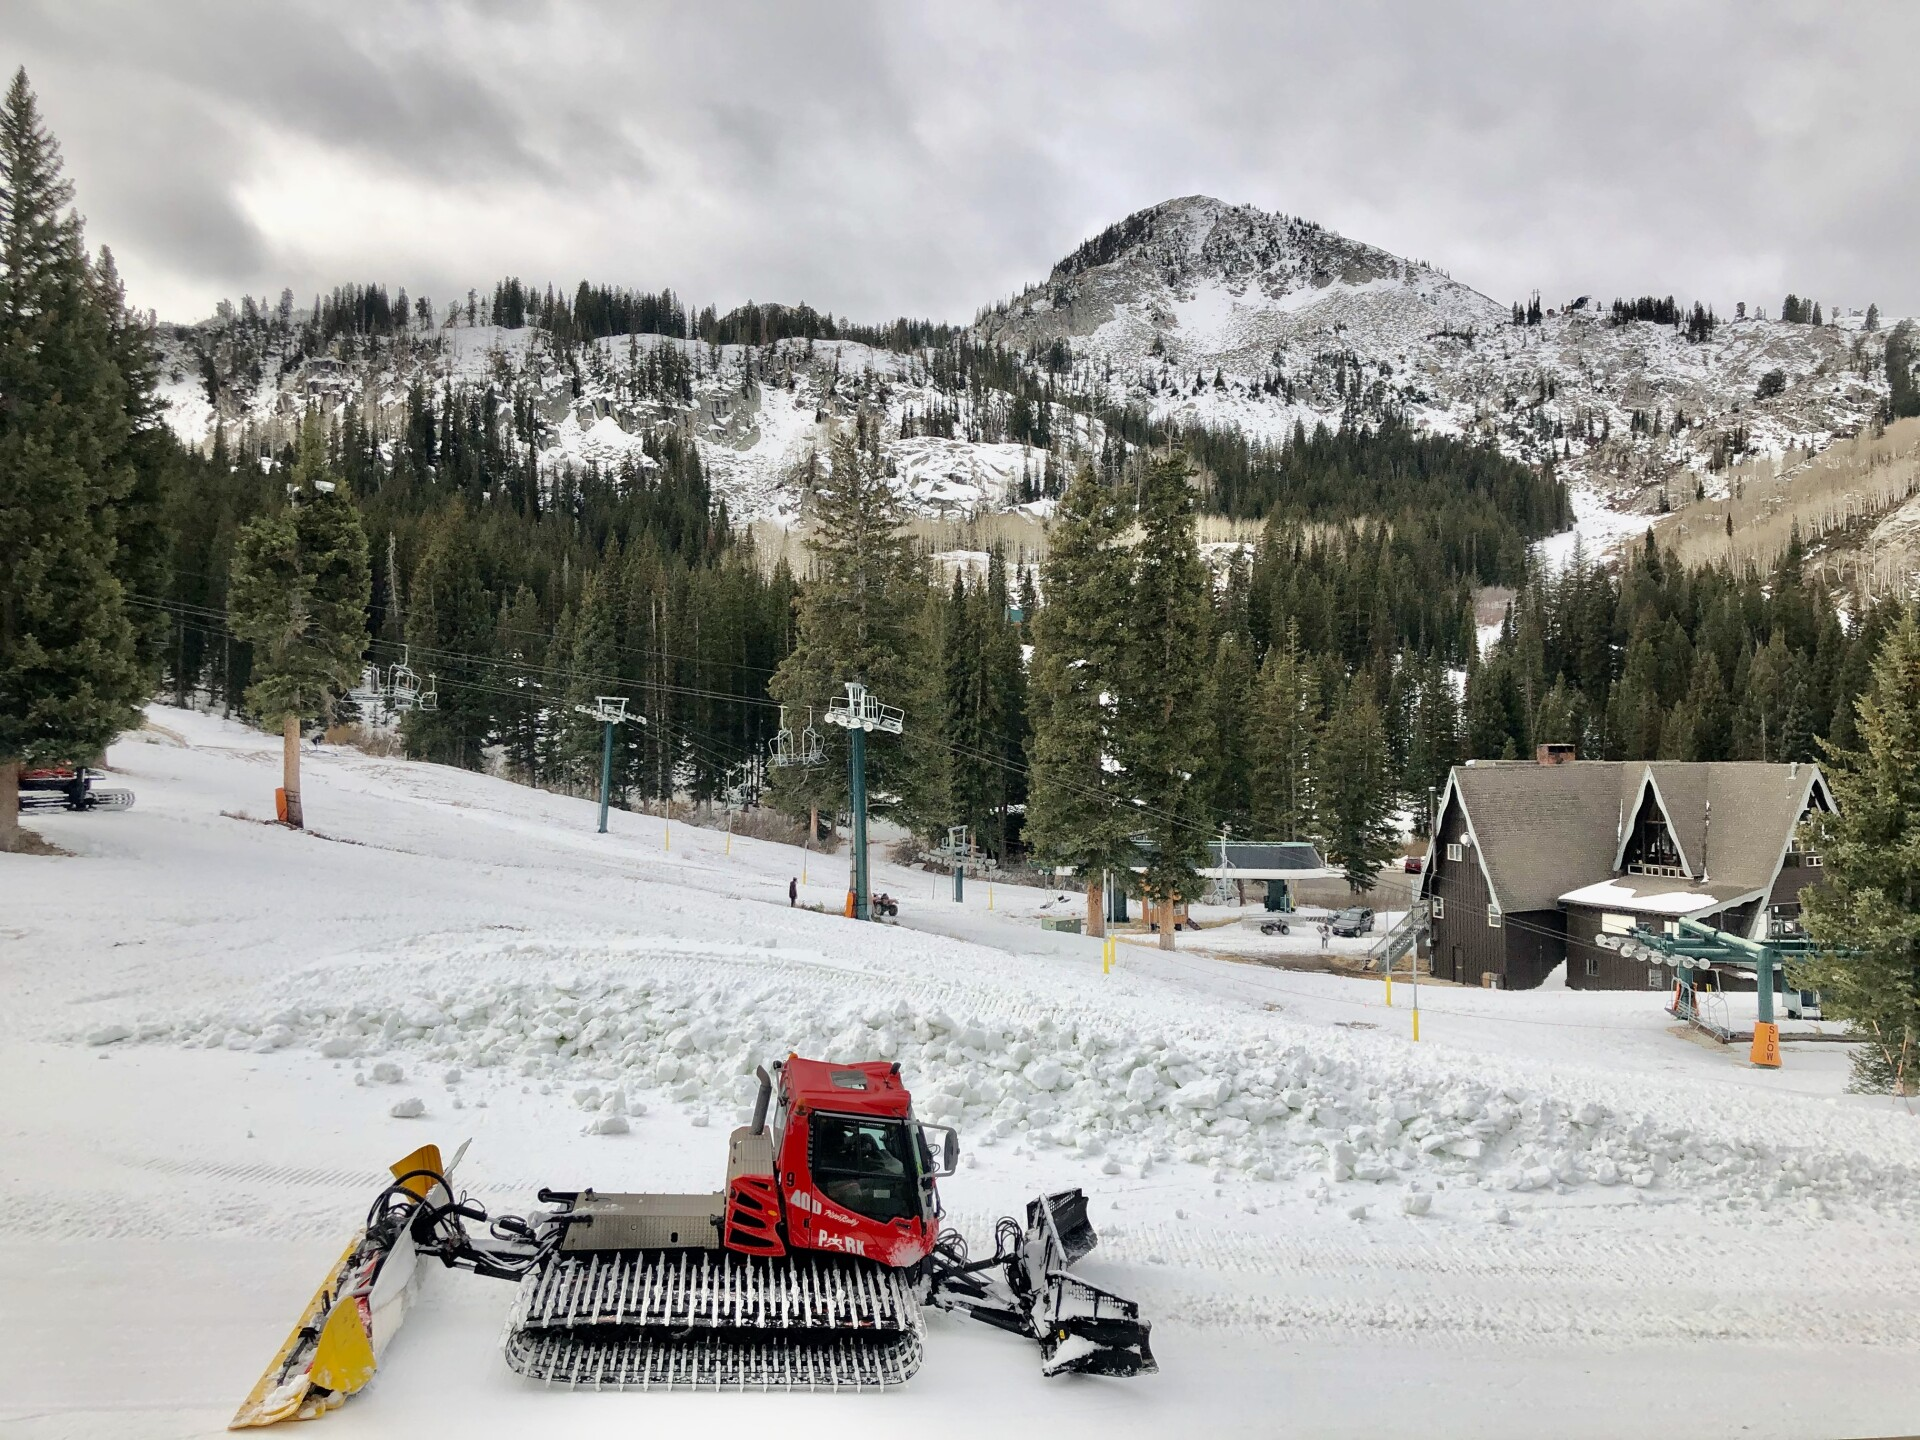 Photos: Brighton Resort holds opening day